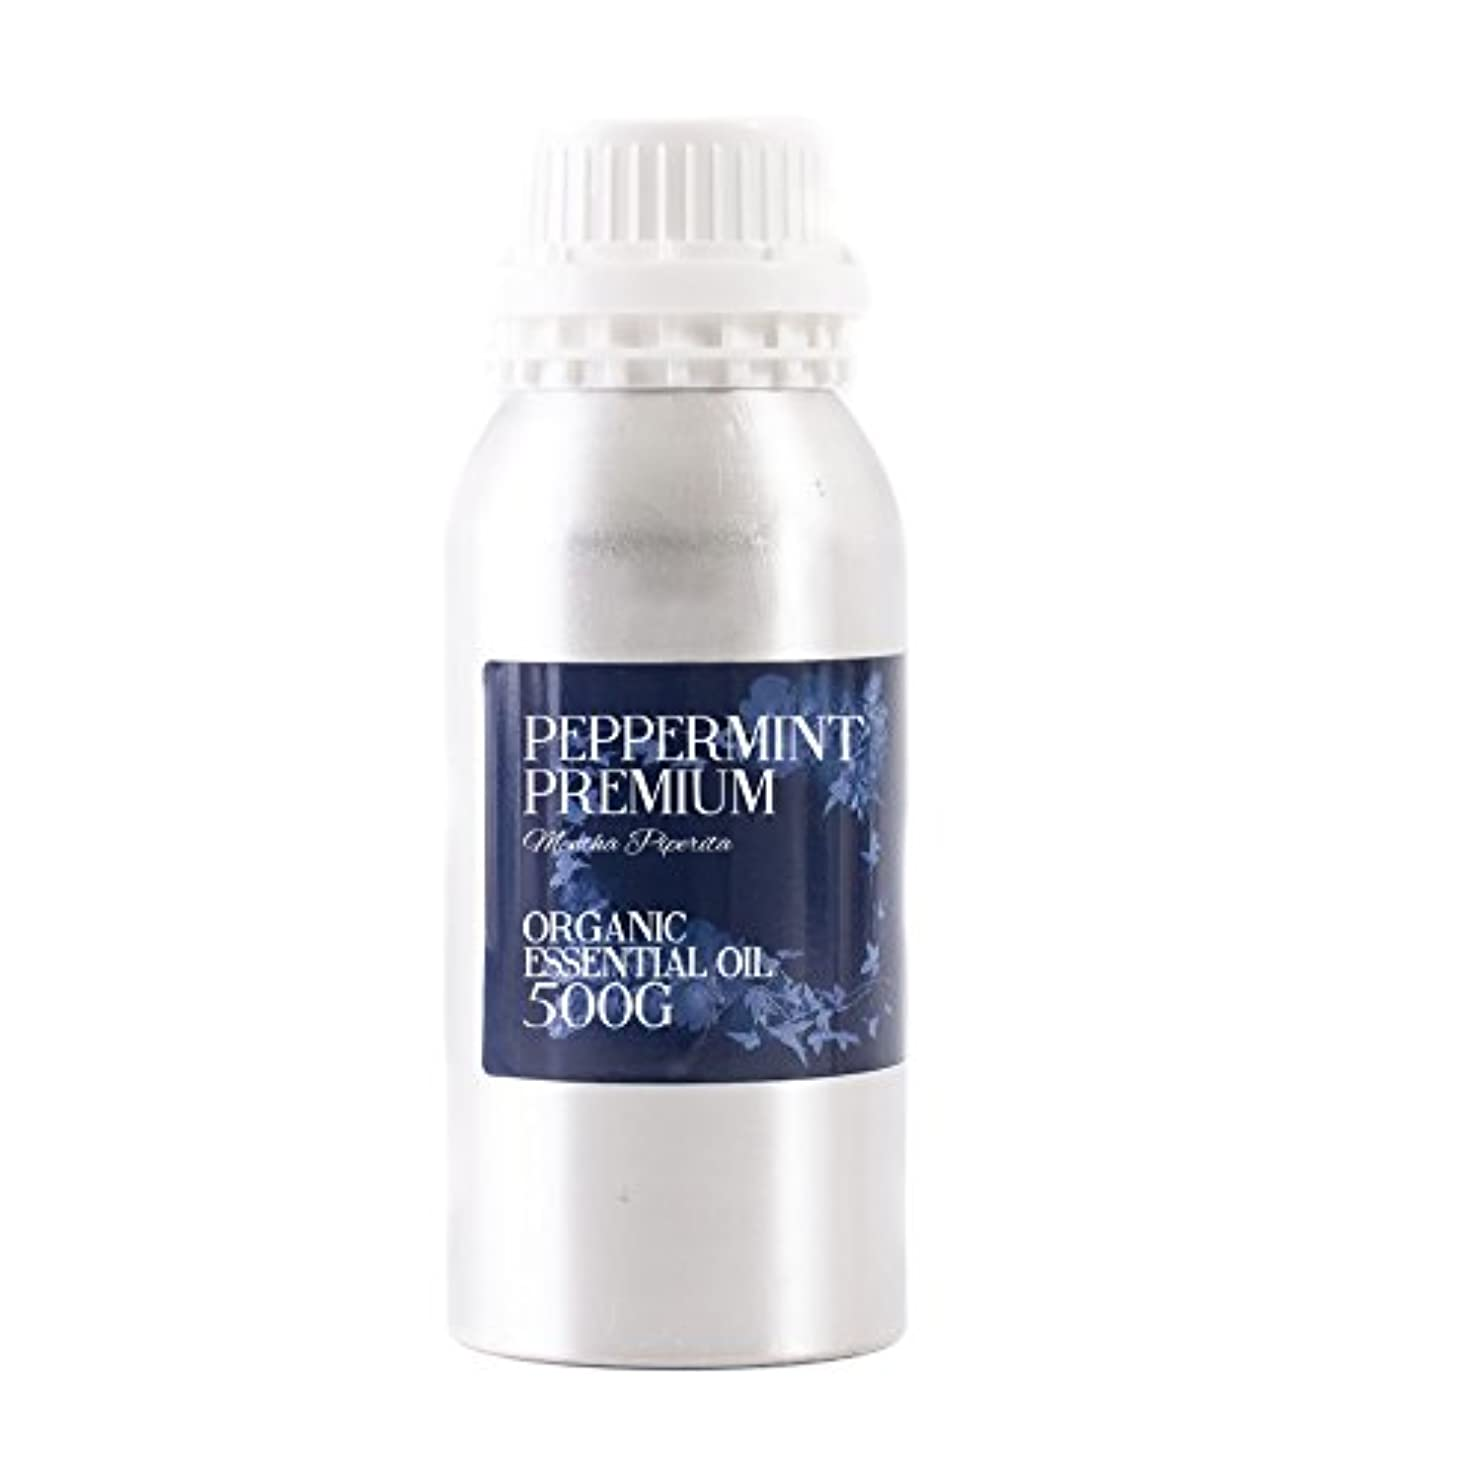 別れるアライメントぬれたMystic Moments | Peppermint Premium Organic Essential Oil - 500g - 100% Pure